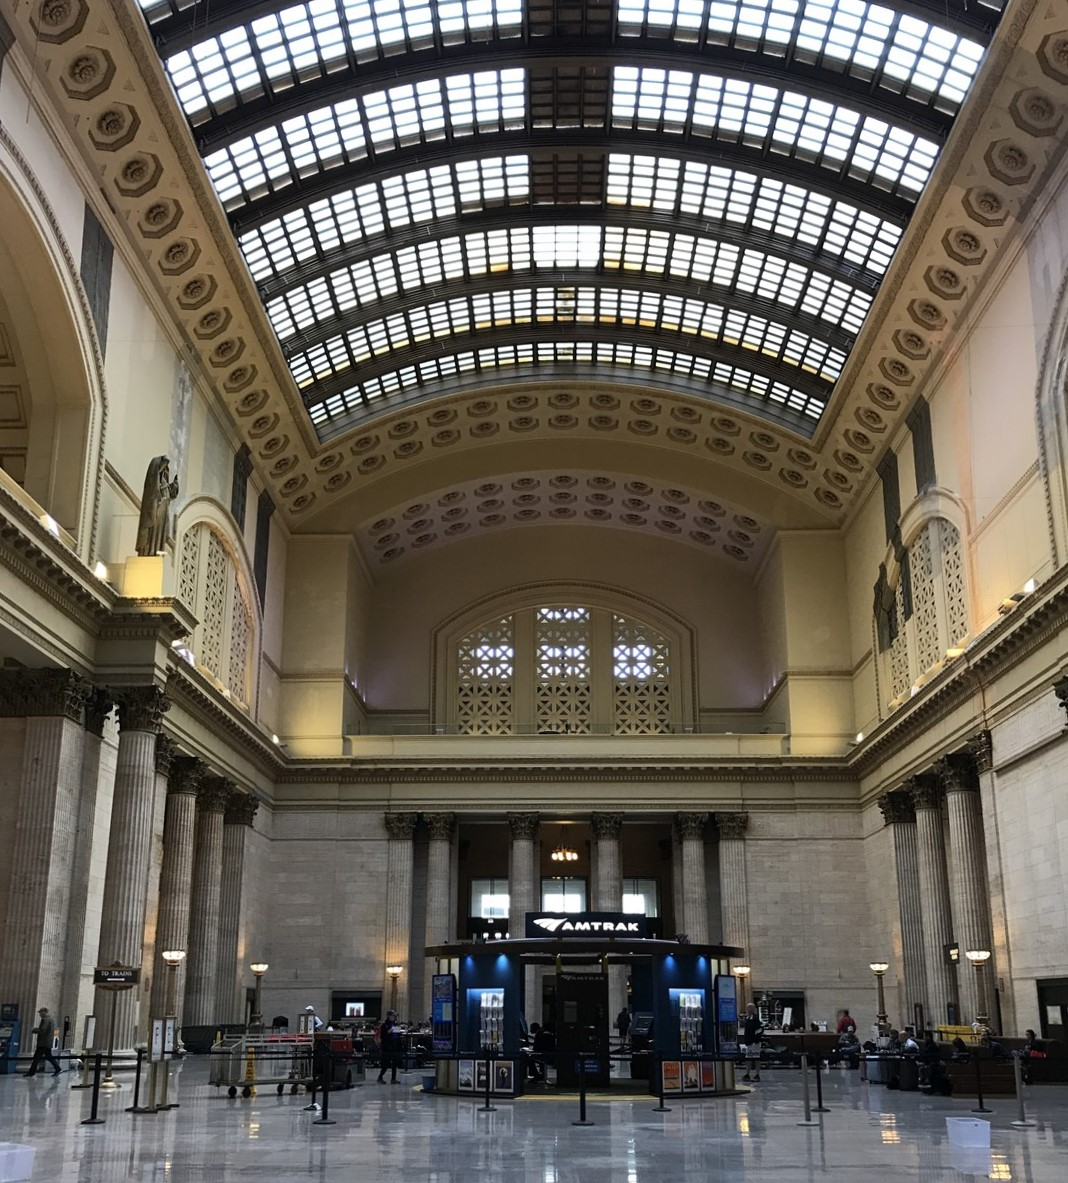 2017 10 15 395 Chicago Open House - Union Station.jpg